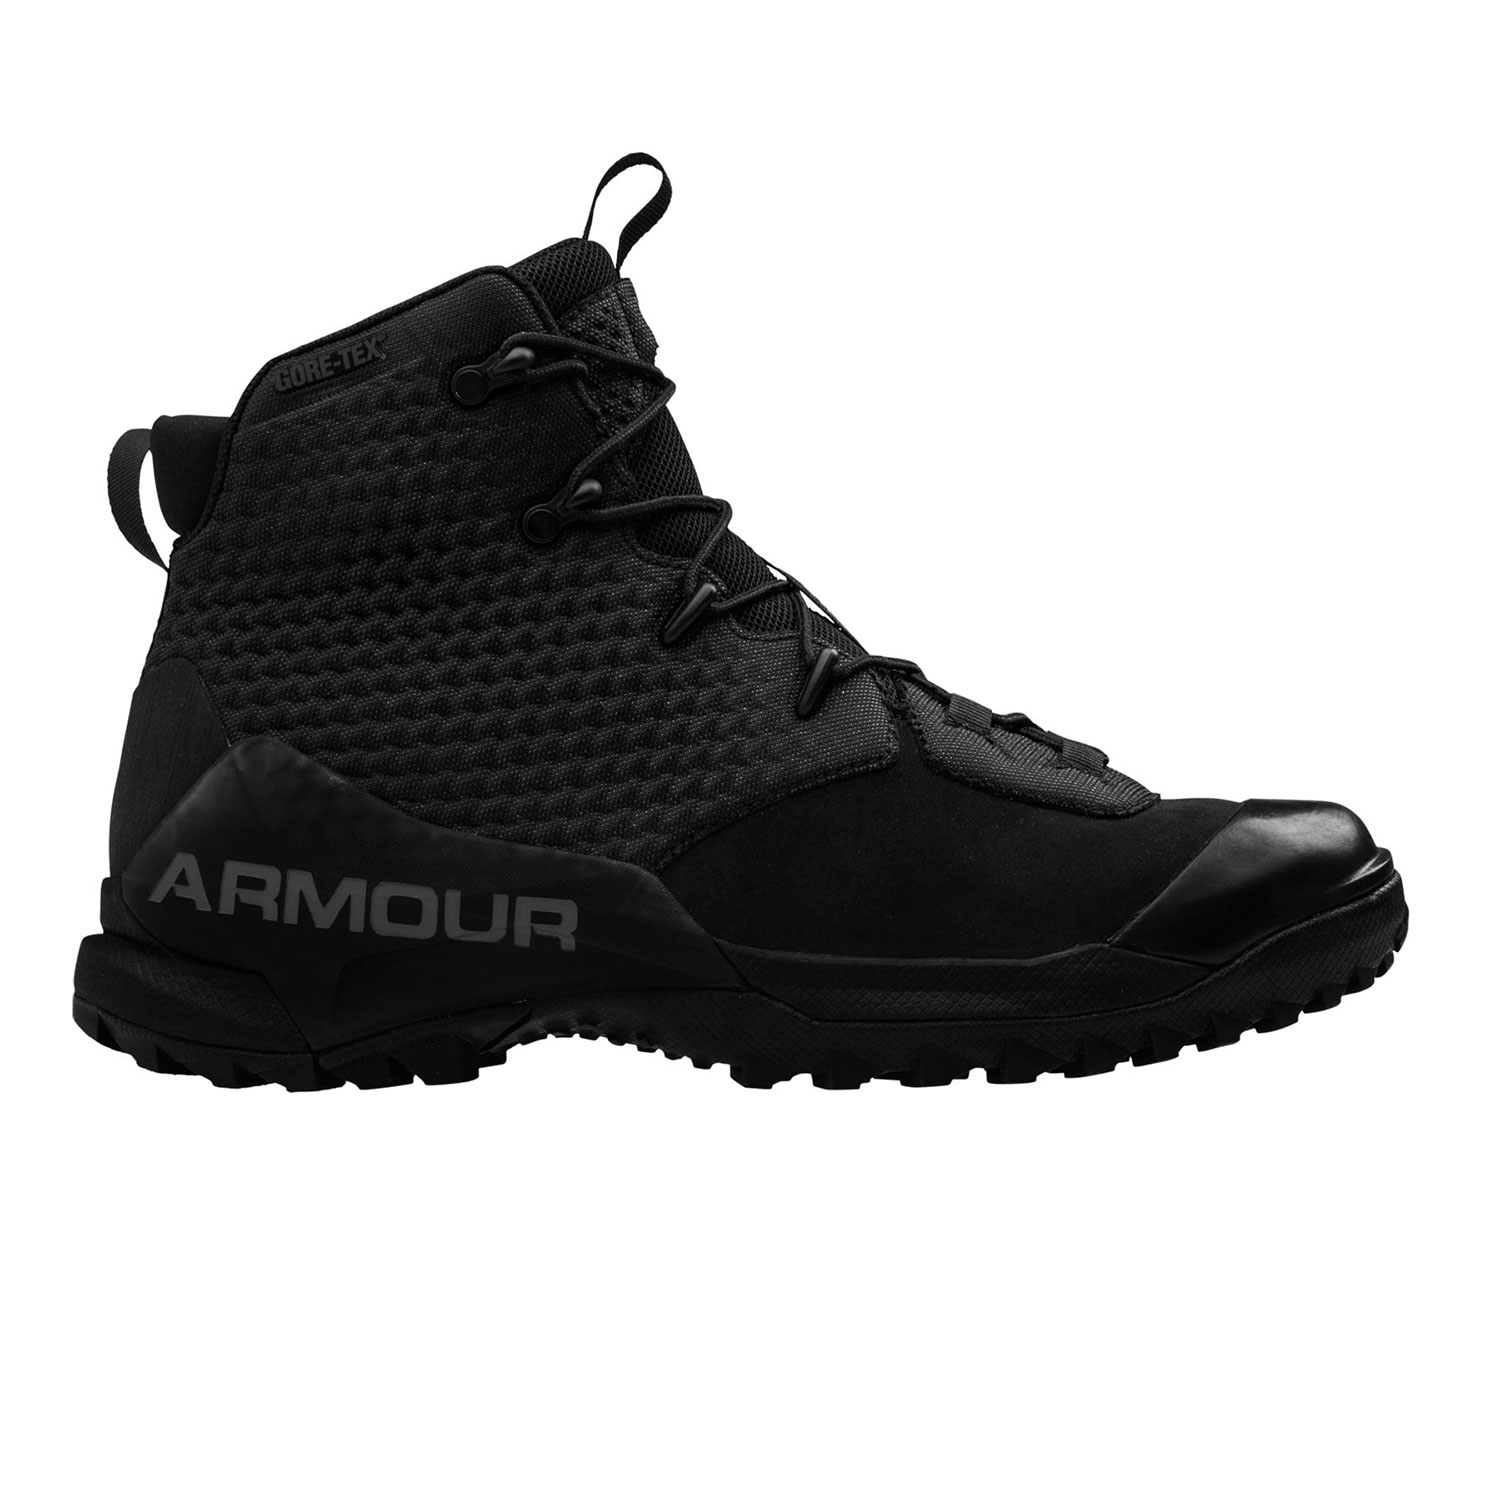 Under Armour Infil Hike GTX Waterproof Boot